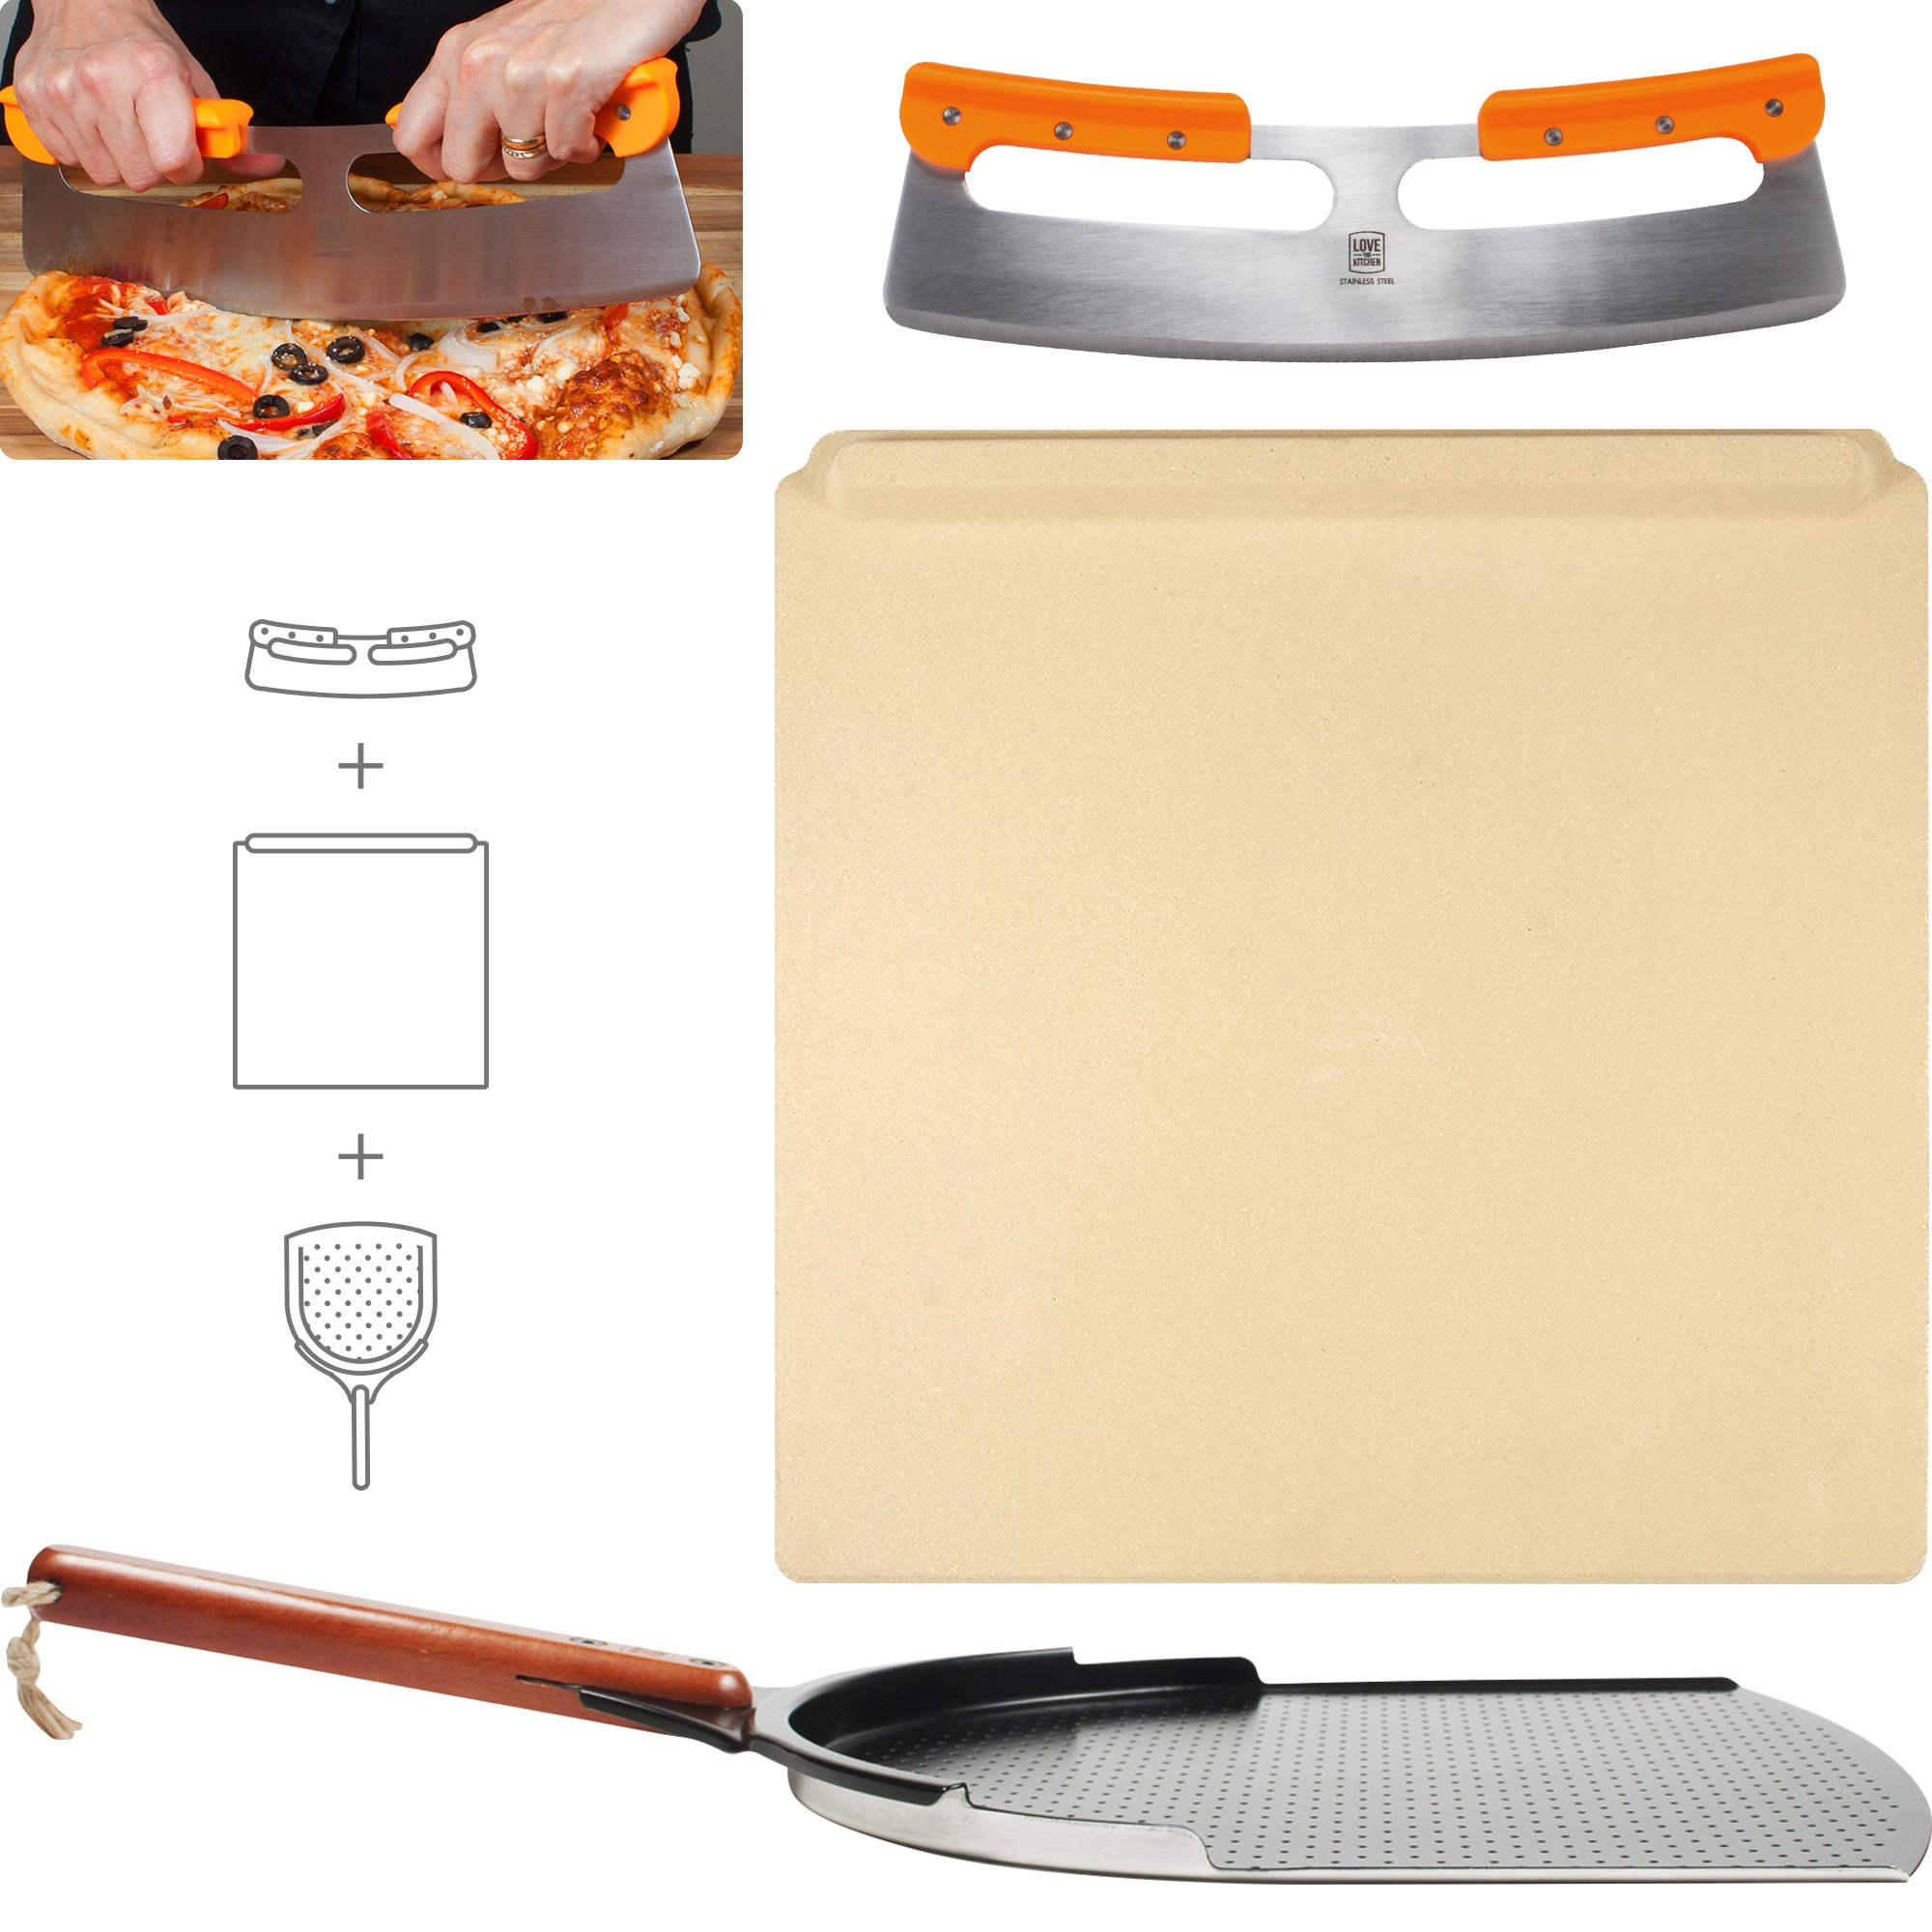 The Ultimate Pizza Making Set - 14'' x 16'' Pizza Stone, 14'' Aluminum Pizza Peel and 14'' Stainless Steel Rocker Pizza Cutter | Great for Baking Pizza, Cookies and Bread in Any Oven or Grill by Love This Kitchen (Image #9)